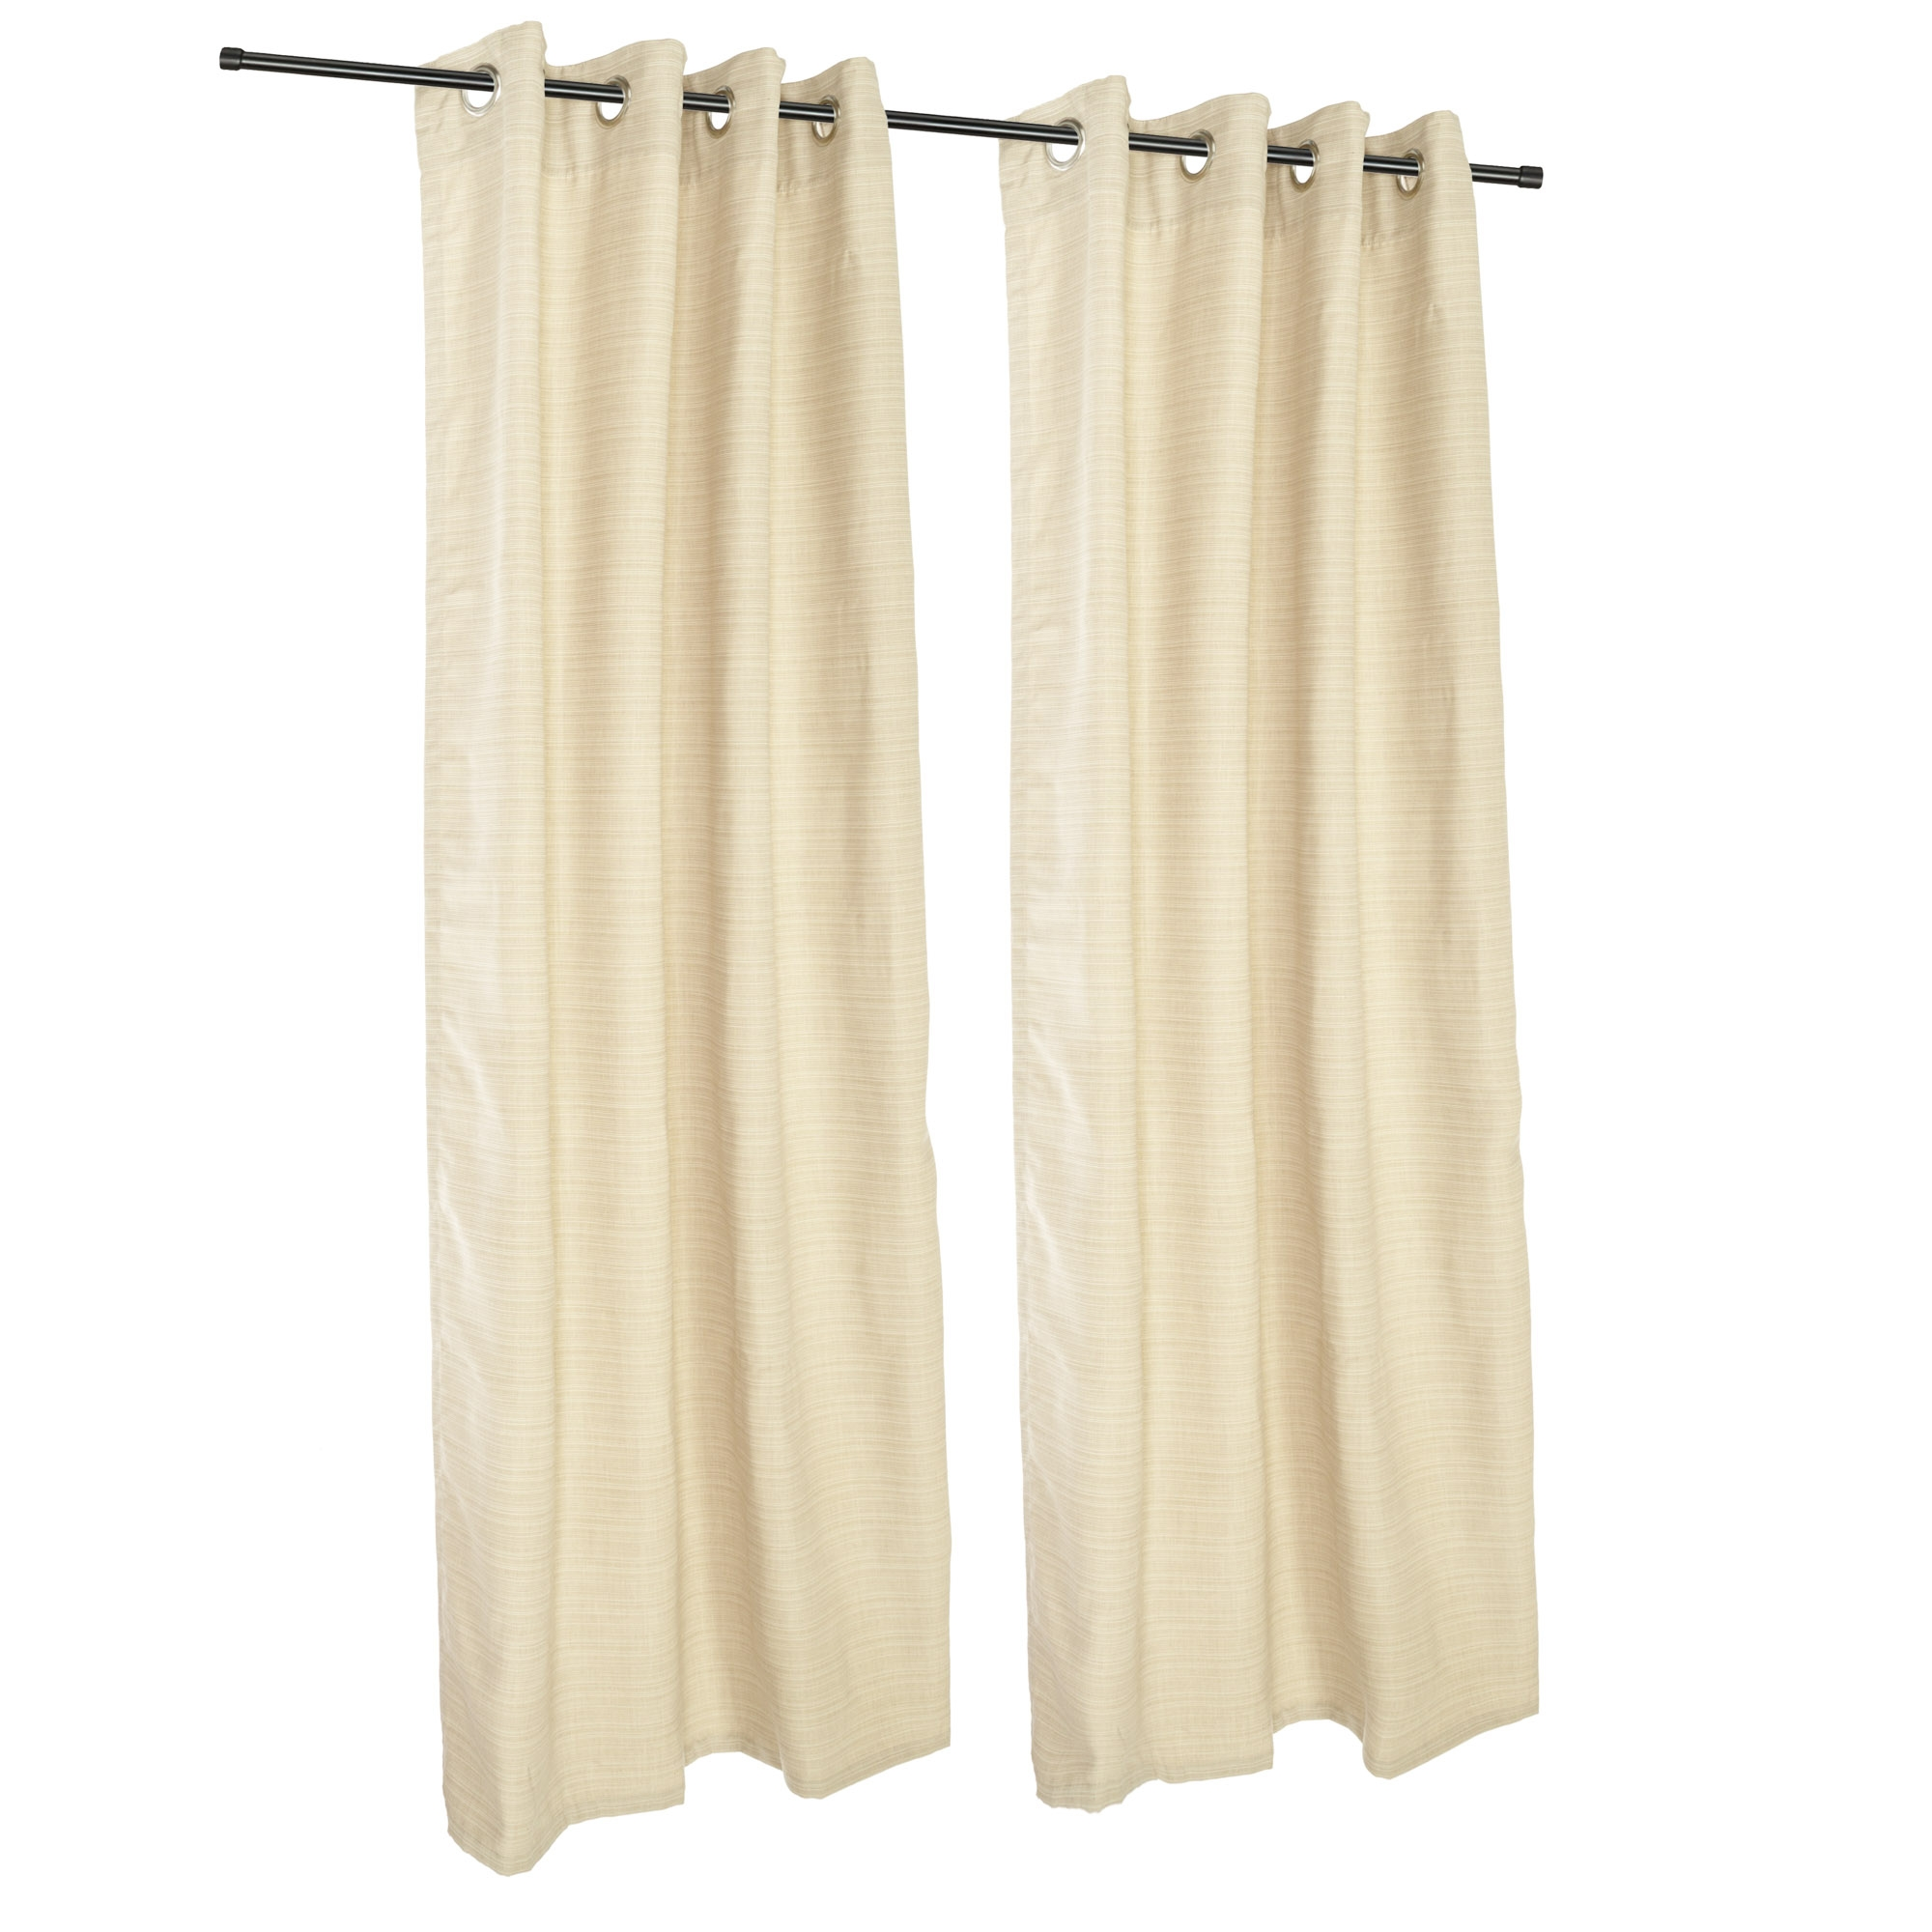 outdoor curtains sunbrella photo - 1